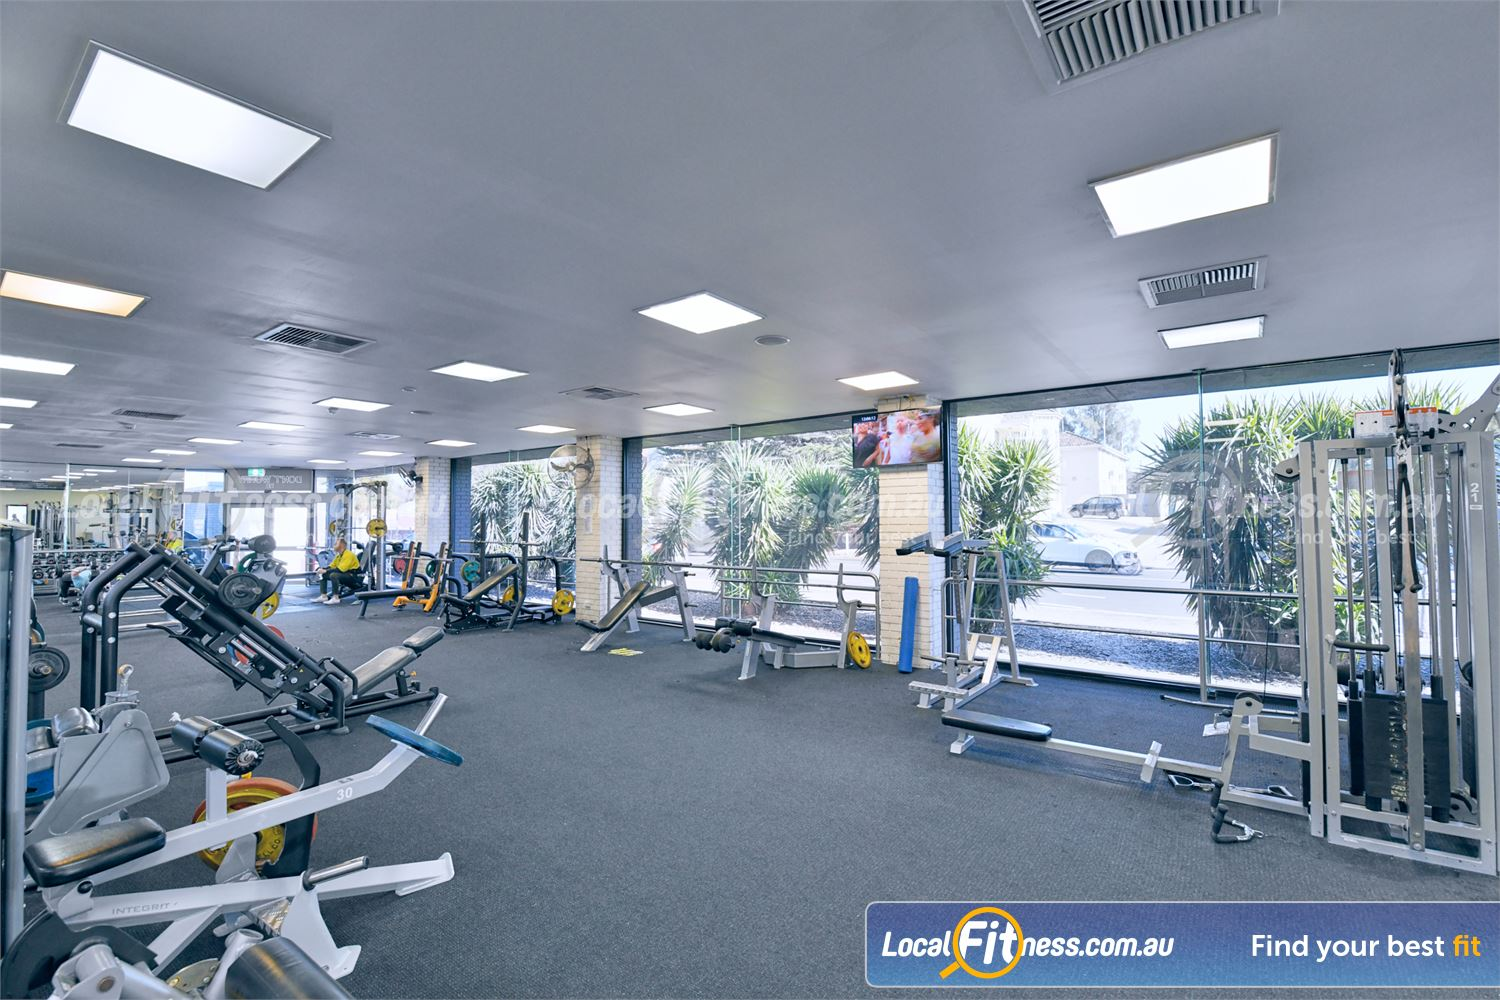 Goodlife Health Clubs Near Chadstone Full range of plate-loading machines including multiple bench presses.